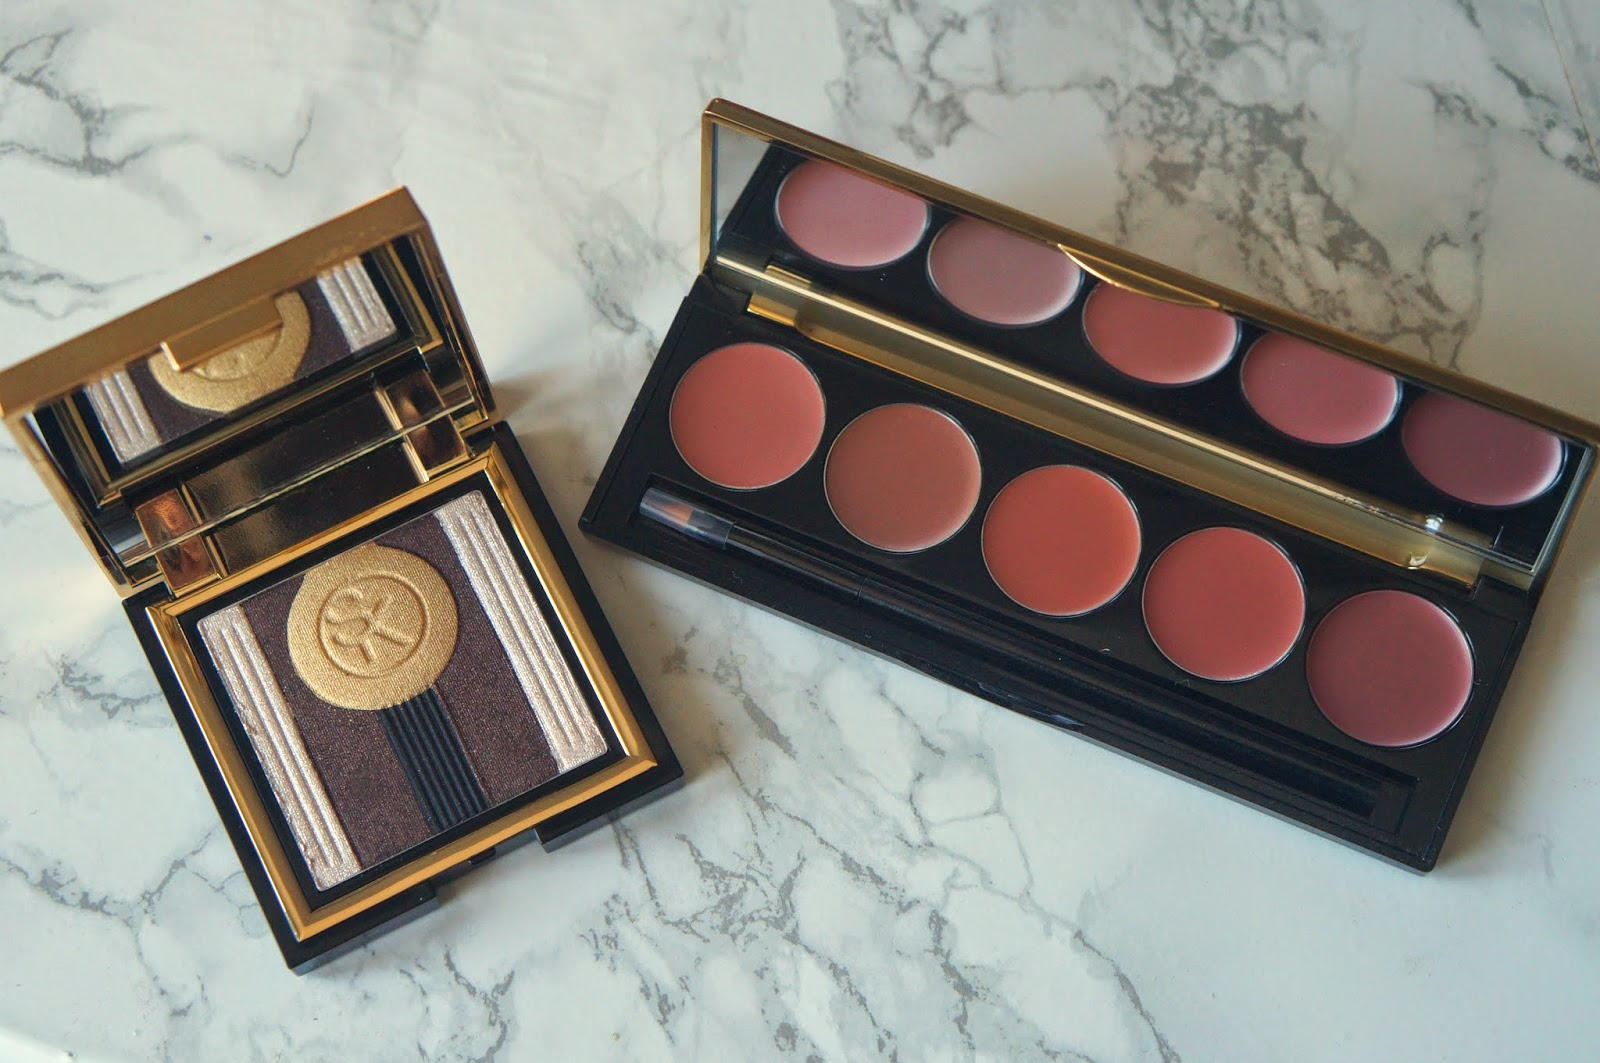 sonia kashuk art deco palettes review